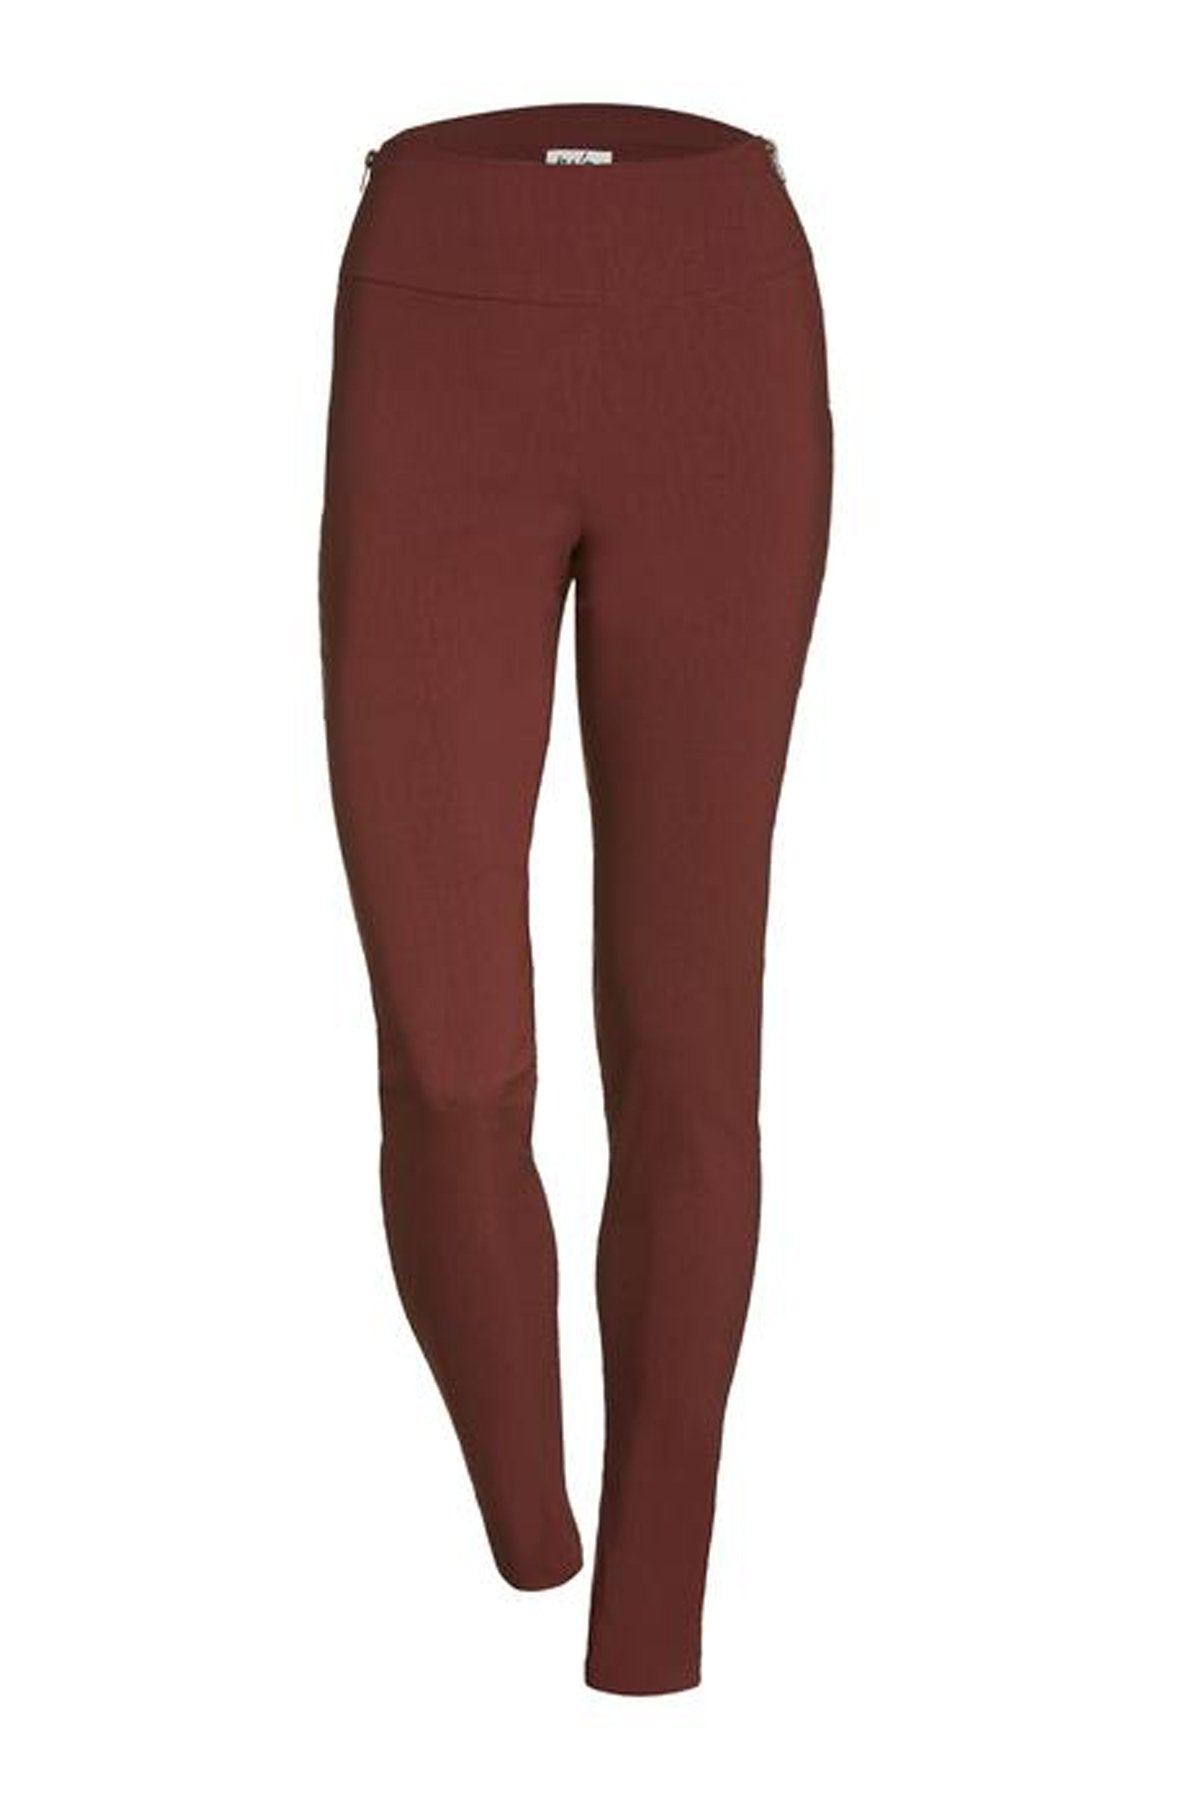 Zenon Pant by Melow par Melissa Bolduc, Rouille, Rust, side zippers at waist, skinny pant, sizes 4-16, made in Quebec